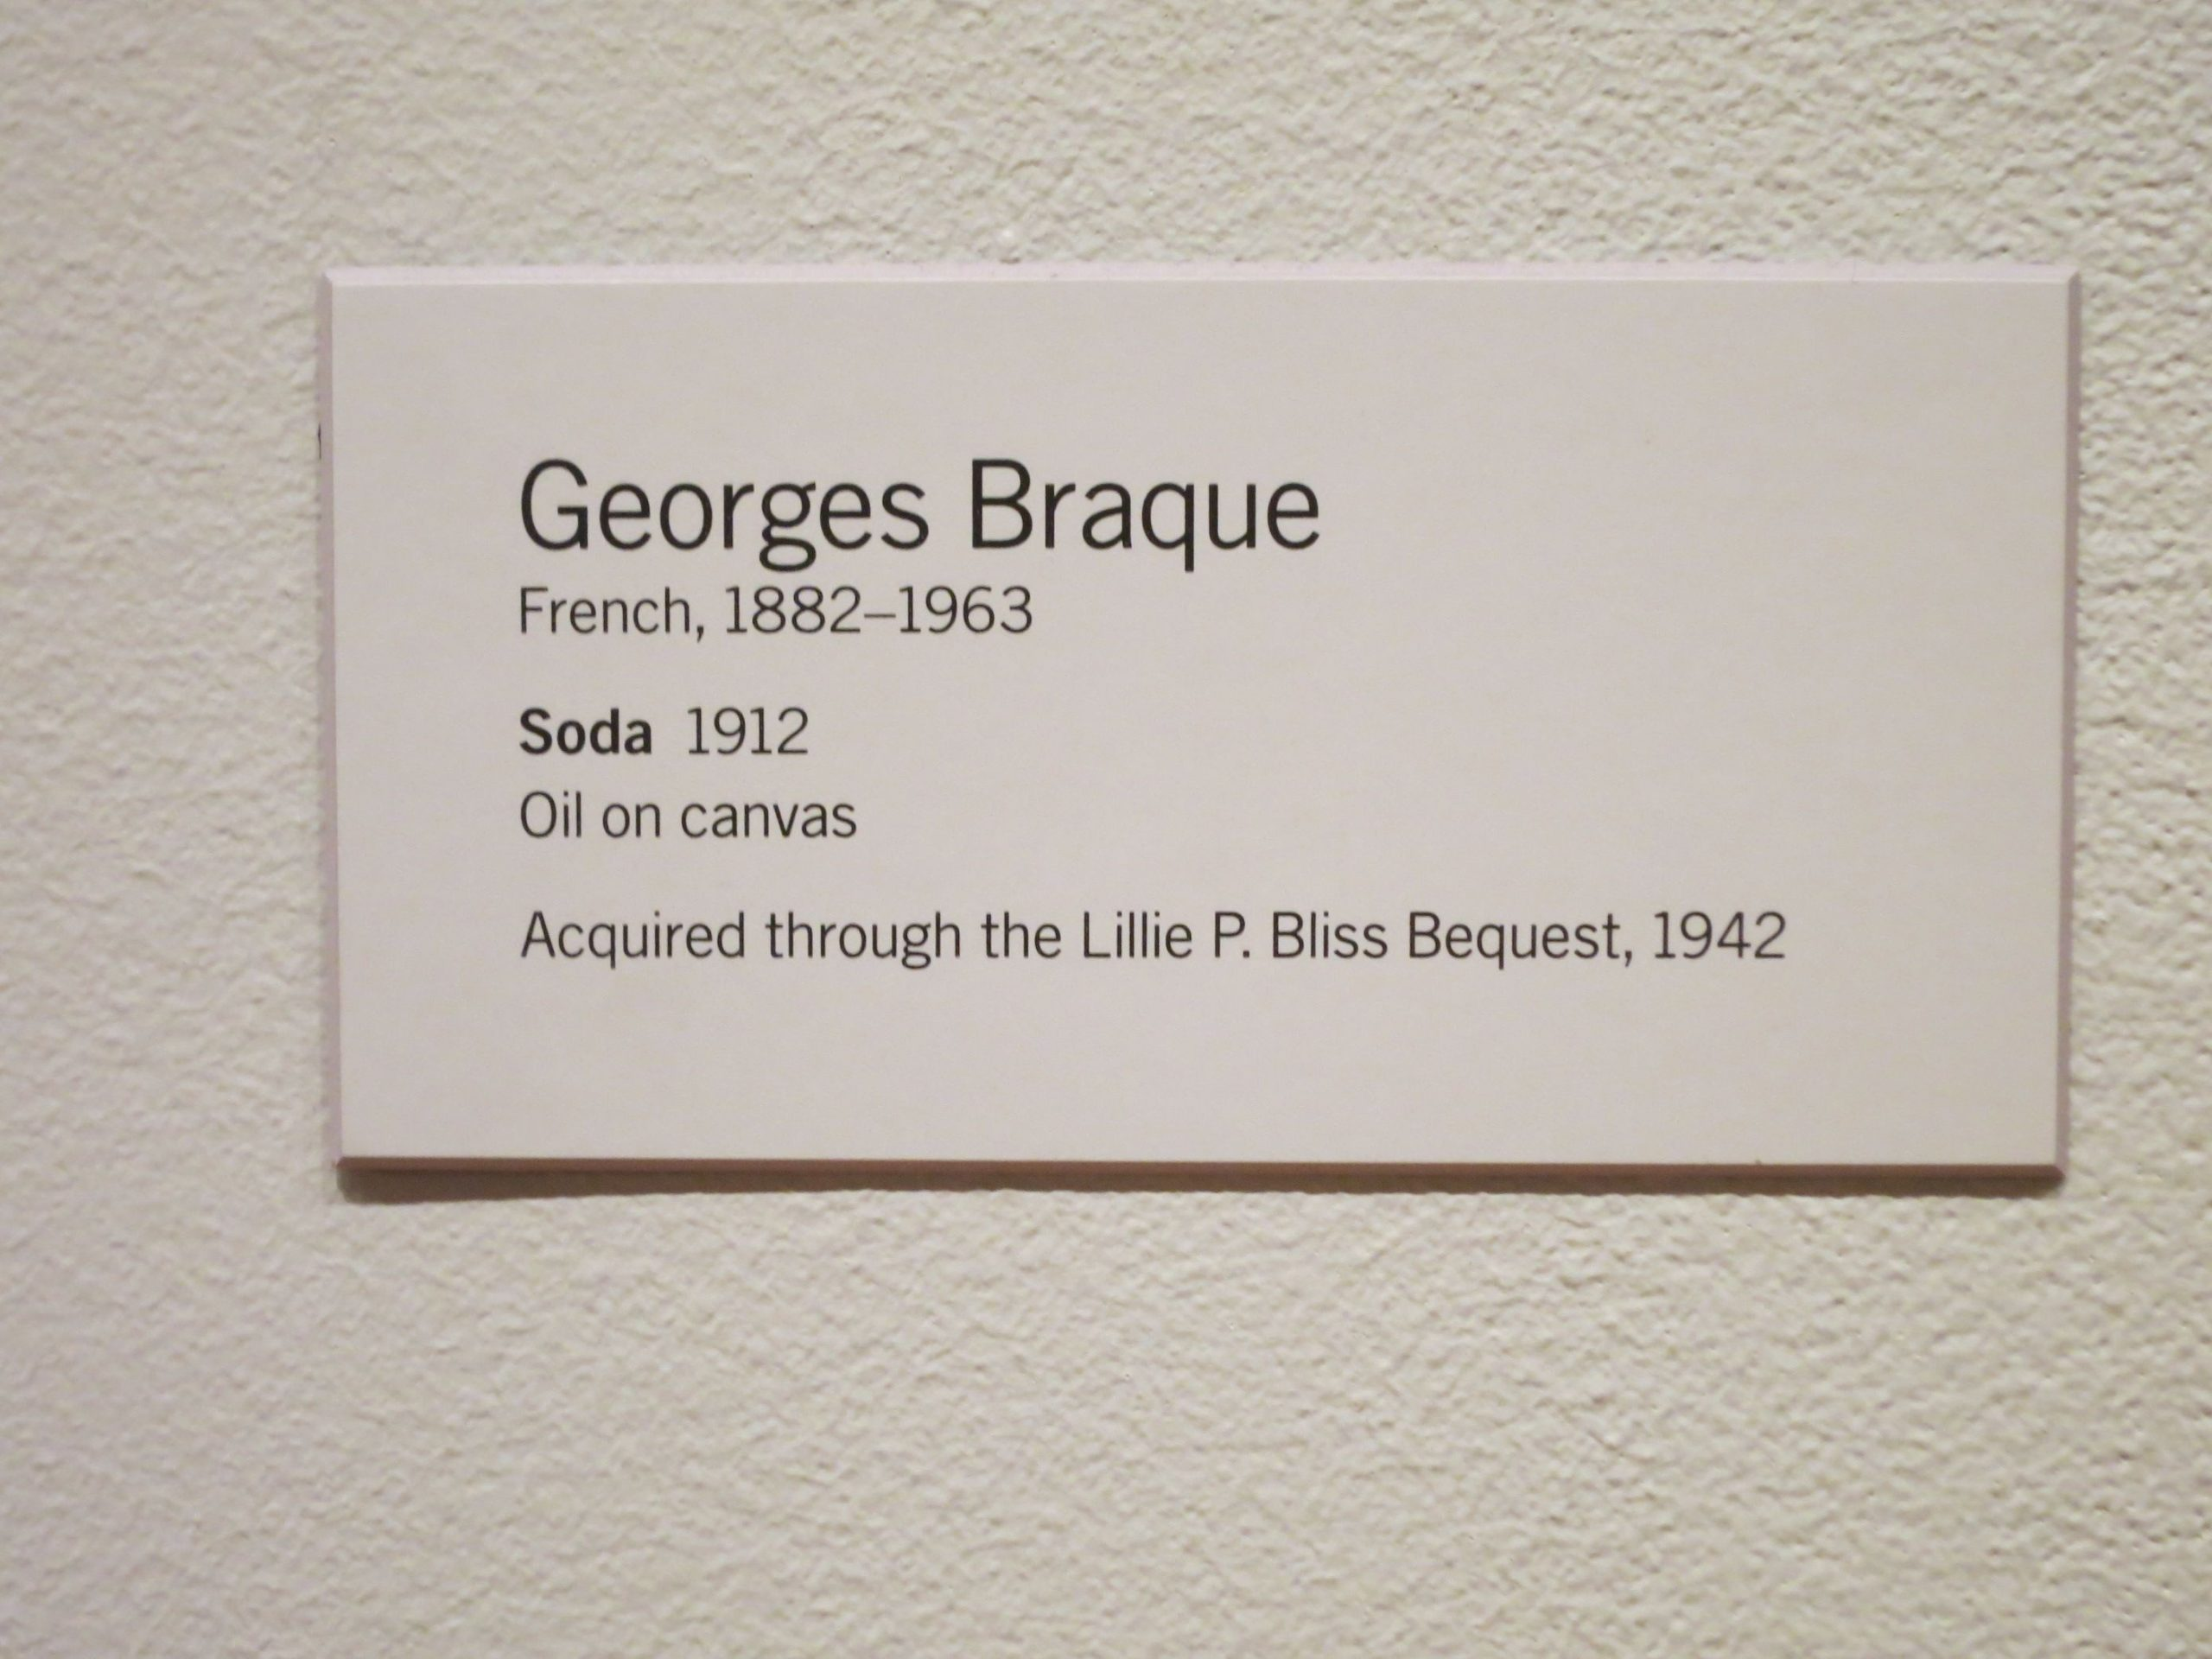 gallery labels template  Classic and straight-forward exhibit label. Easy to read ..